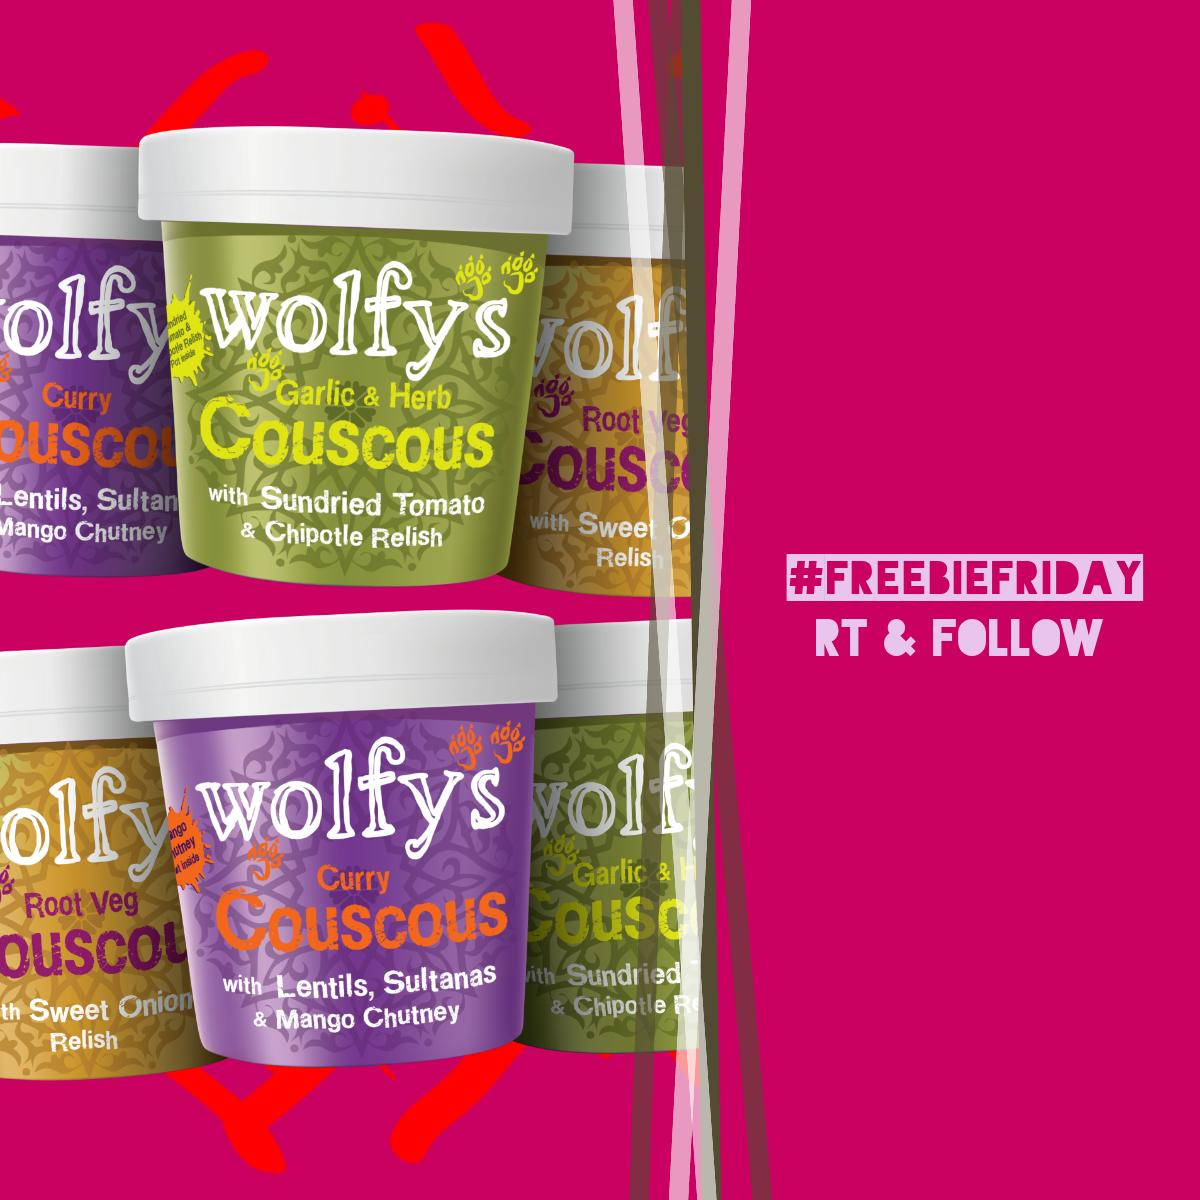 It&#39;s #FreebieFriday!   RT &amp; Follow to win a free Couscous Variety pack! <br>http://pic.twitter.com/Zr5m4URn5R